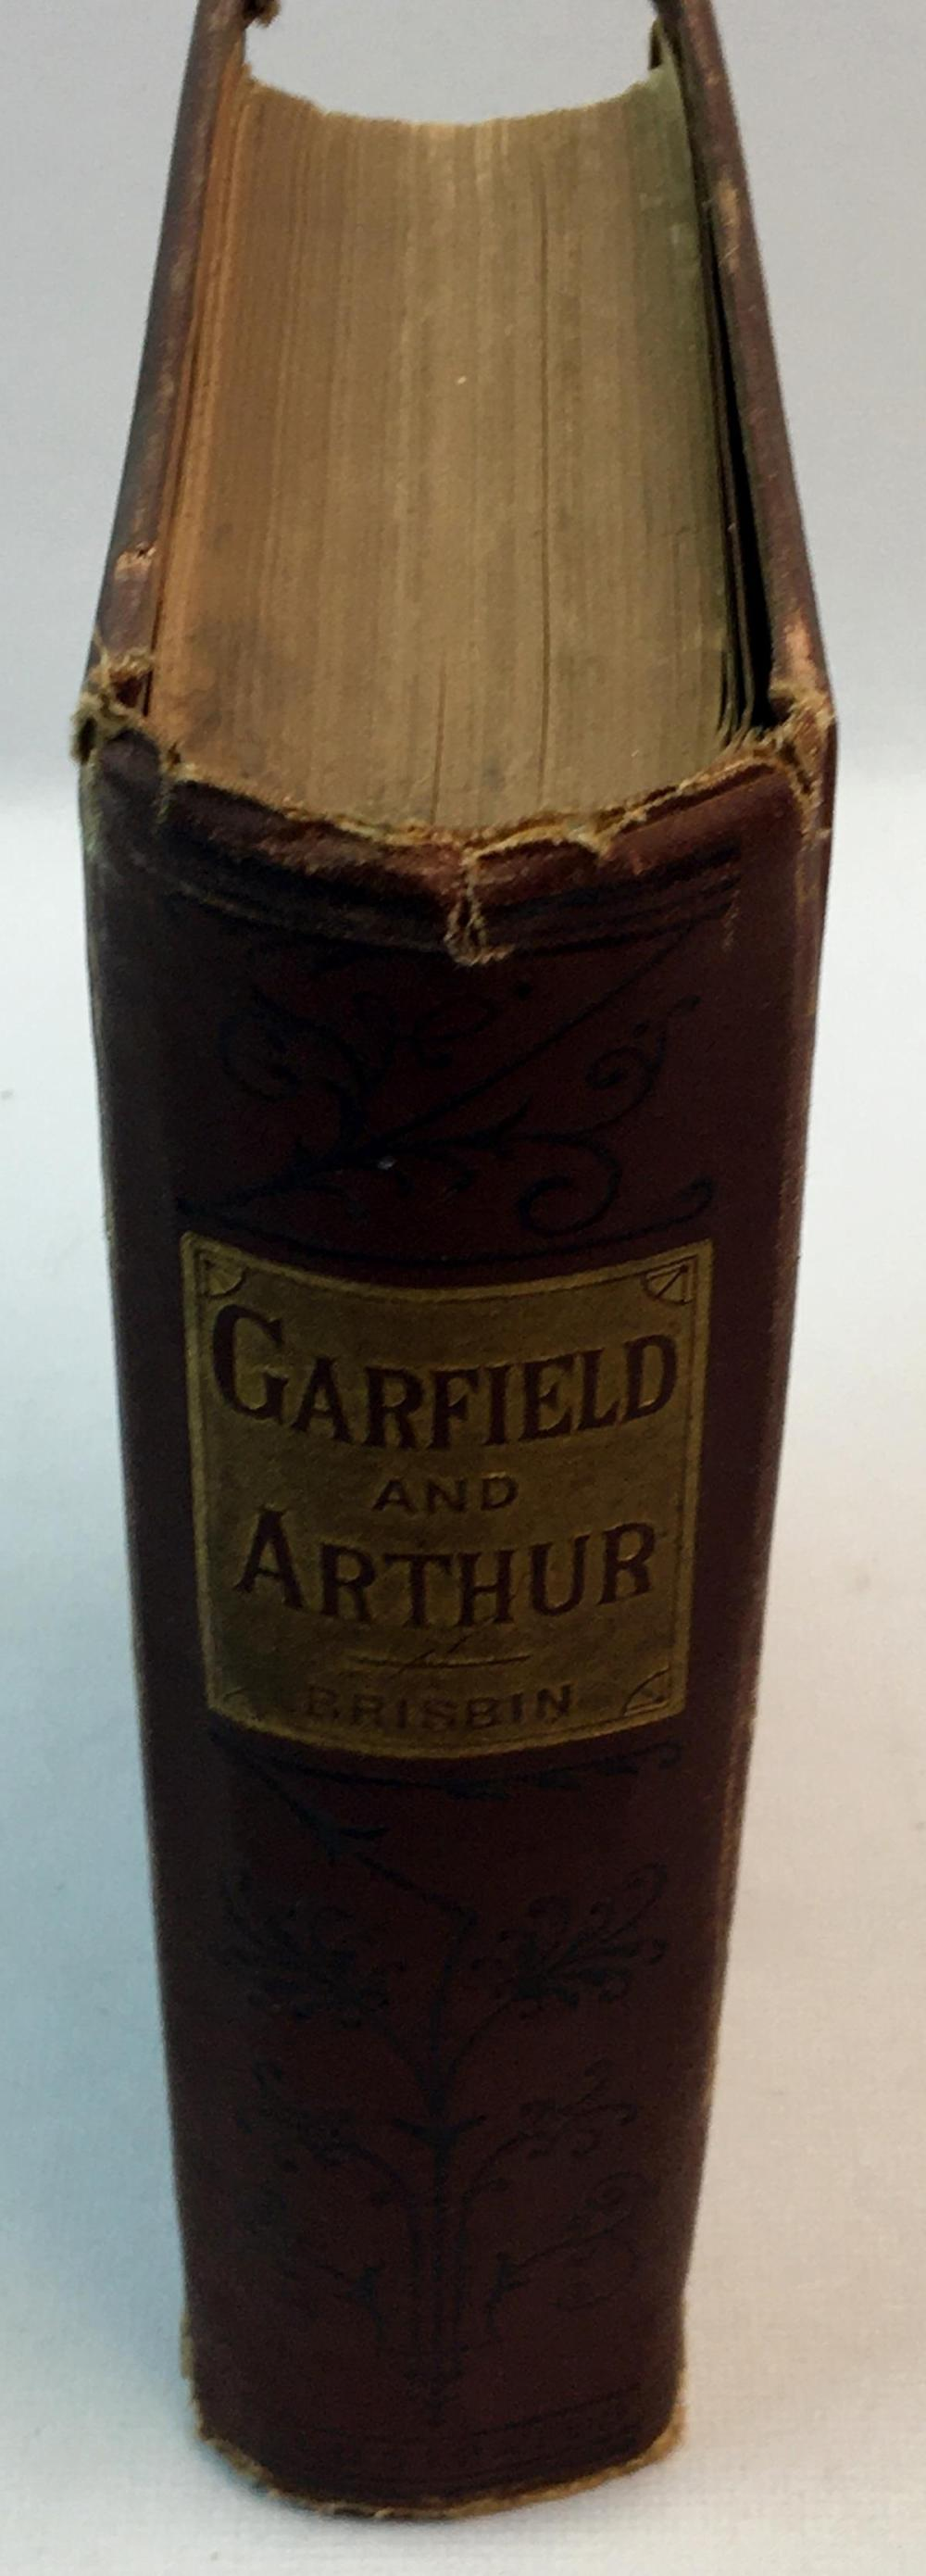 1880 The Life and Public Career of Gen. James A. Garfield (Garfield and Arthur) by Gen. Jas. S. Brisbin FIRST EDITION